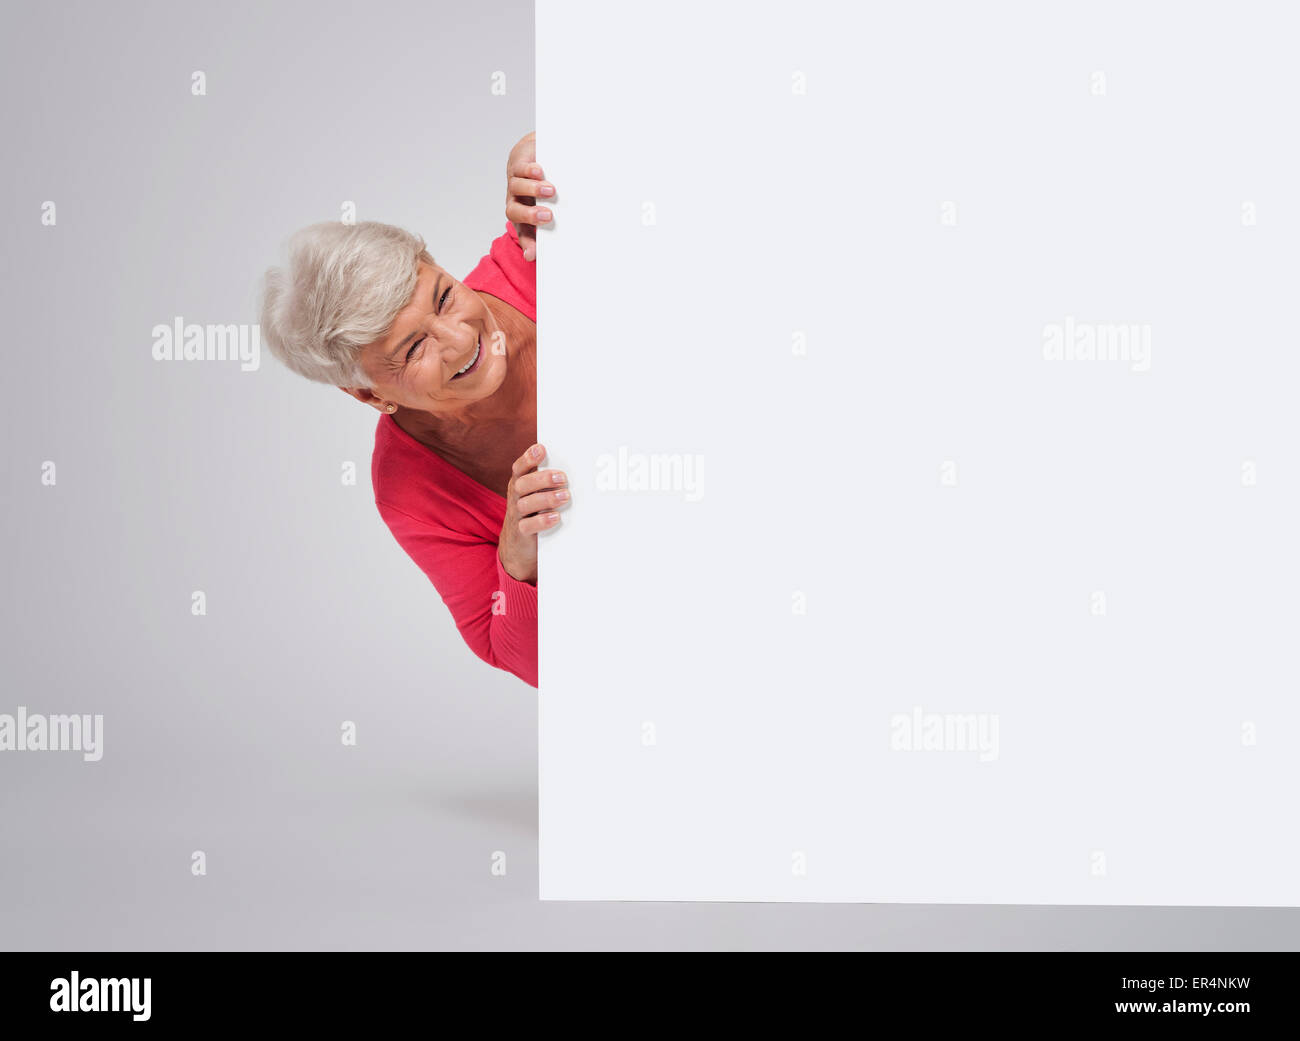 Older lady holding a caption board - Stock Image